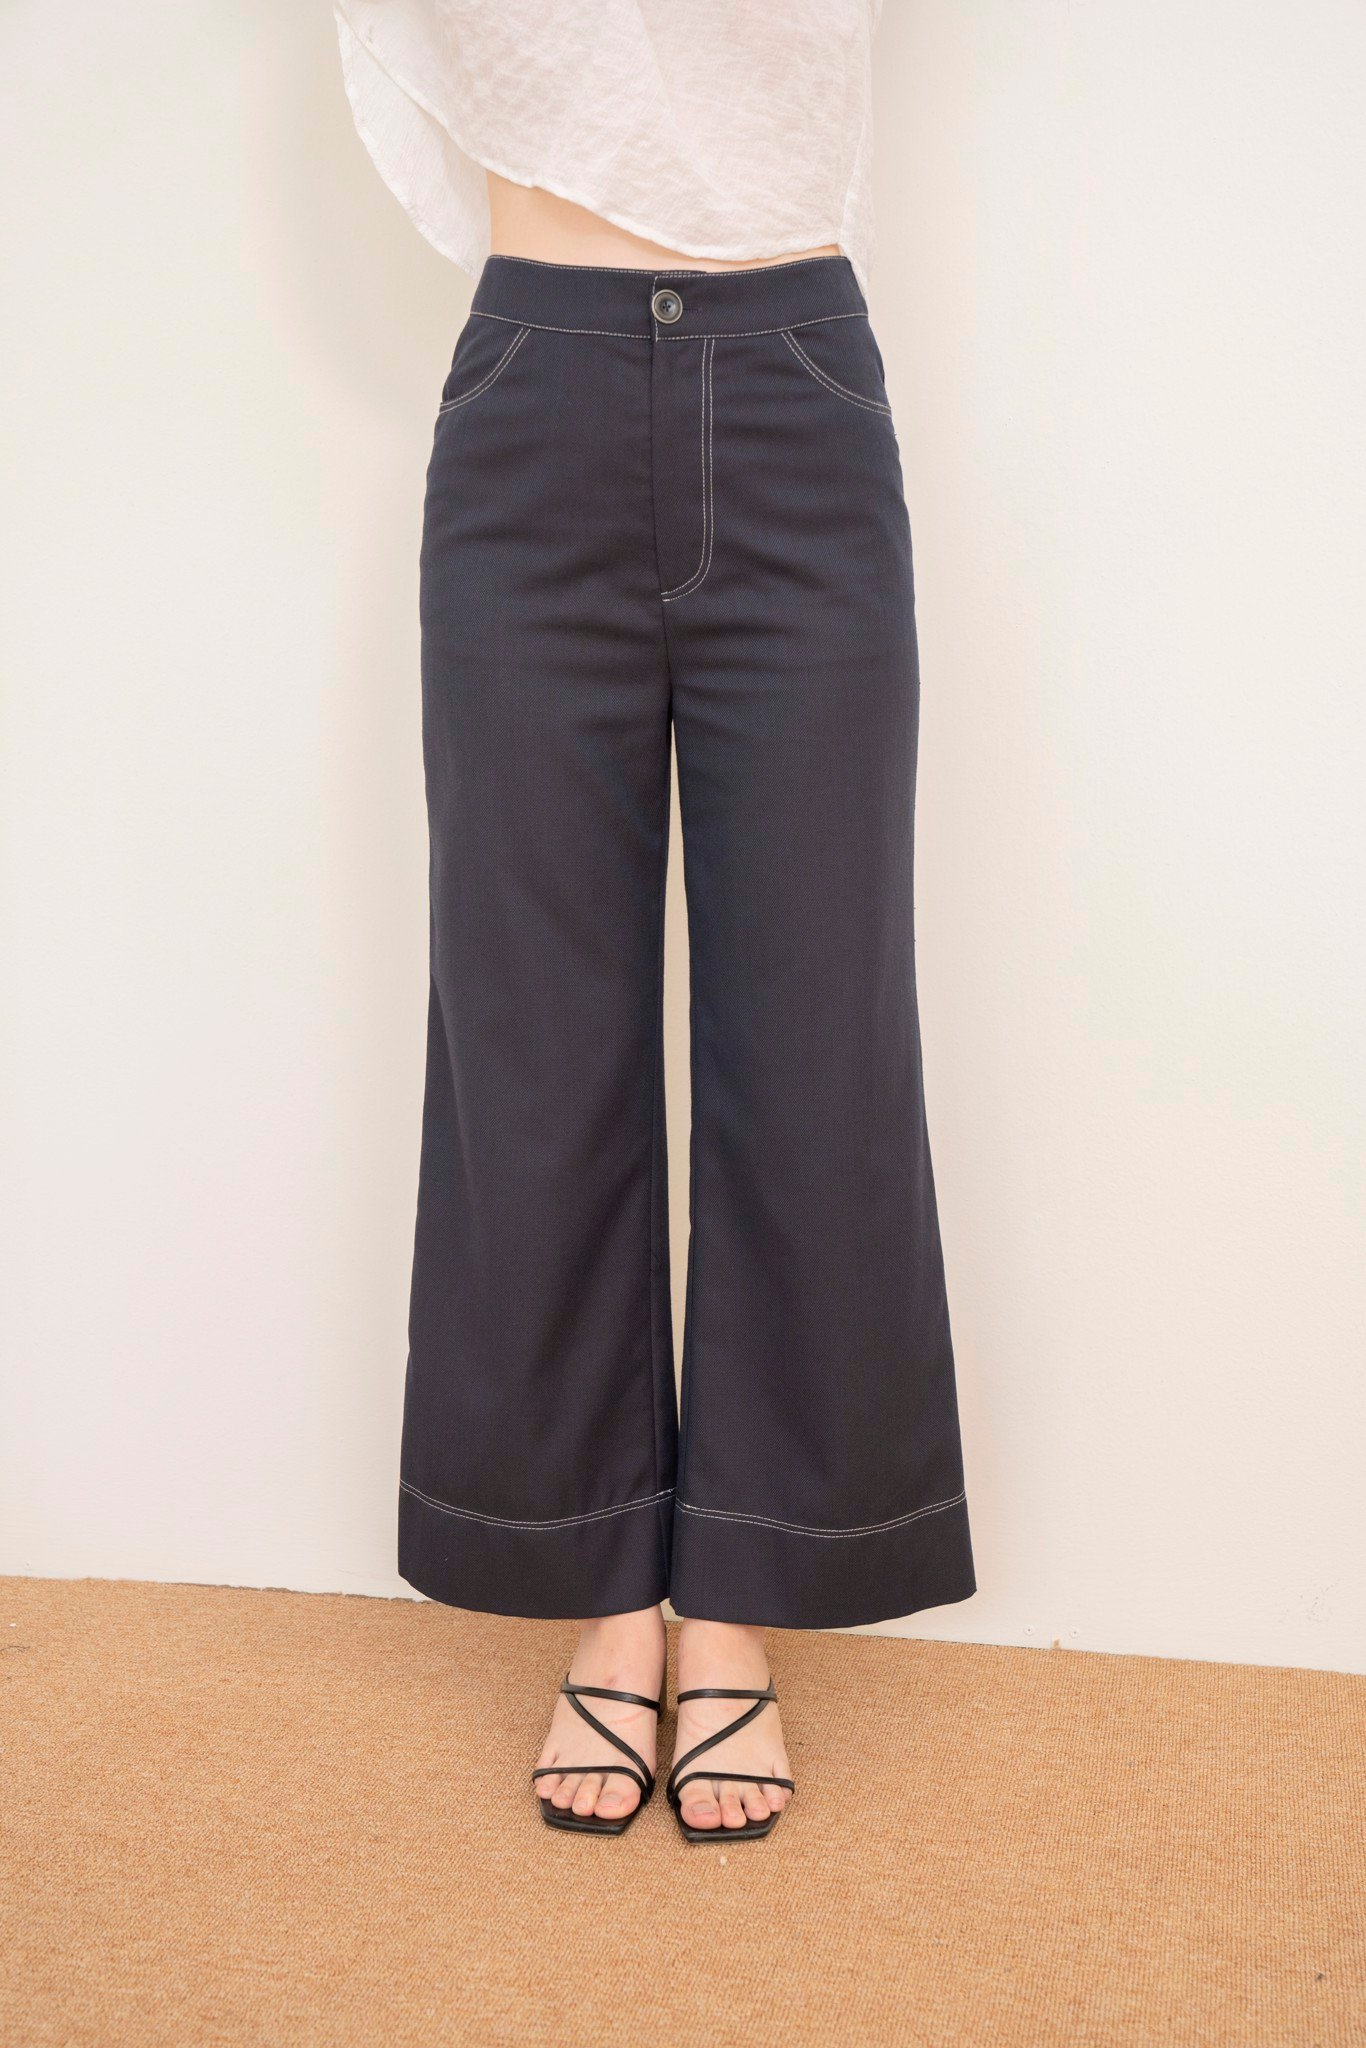 Navy Pants with White Stitching